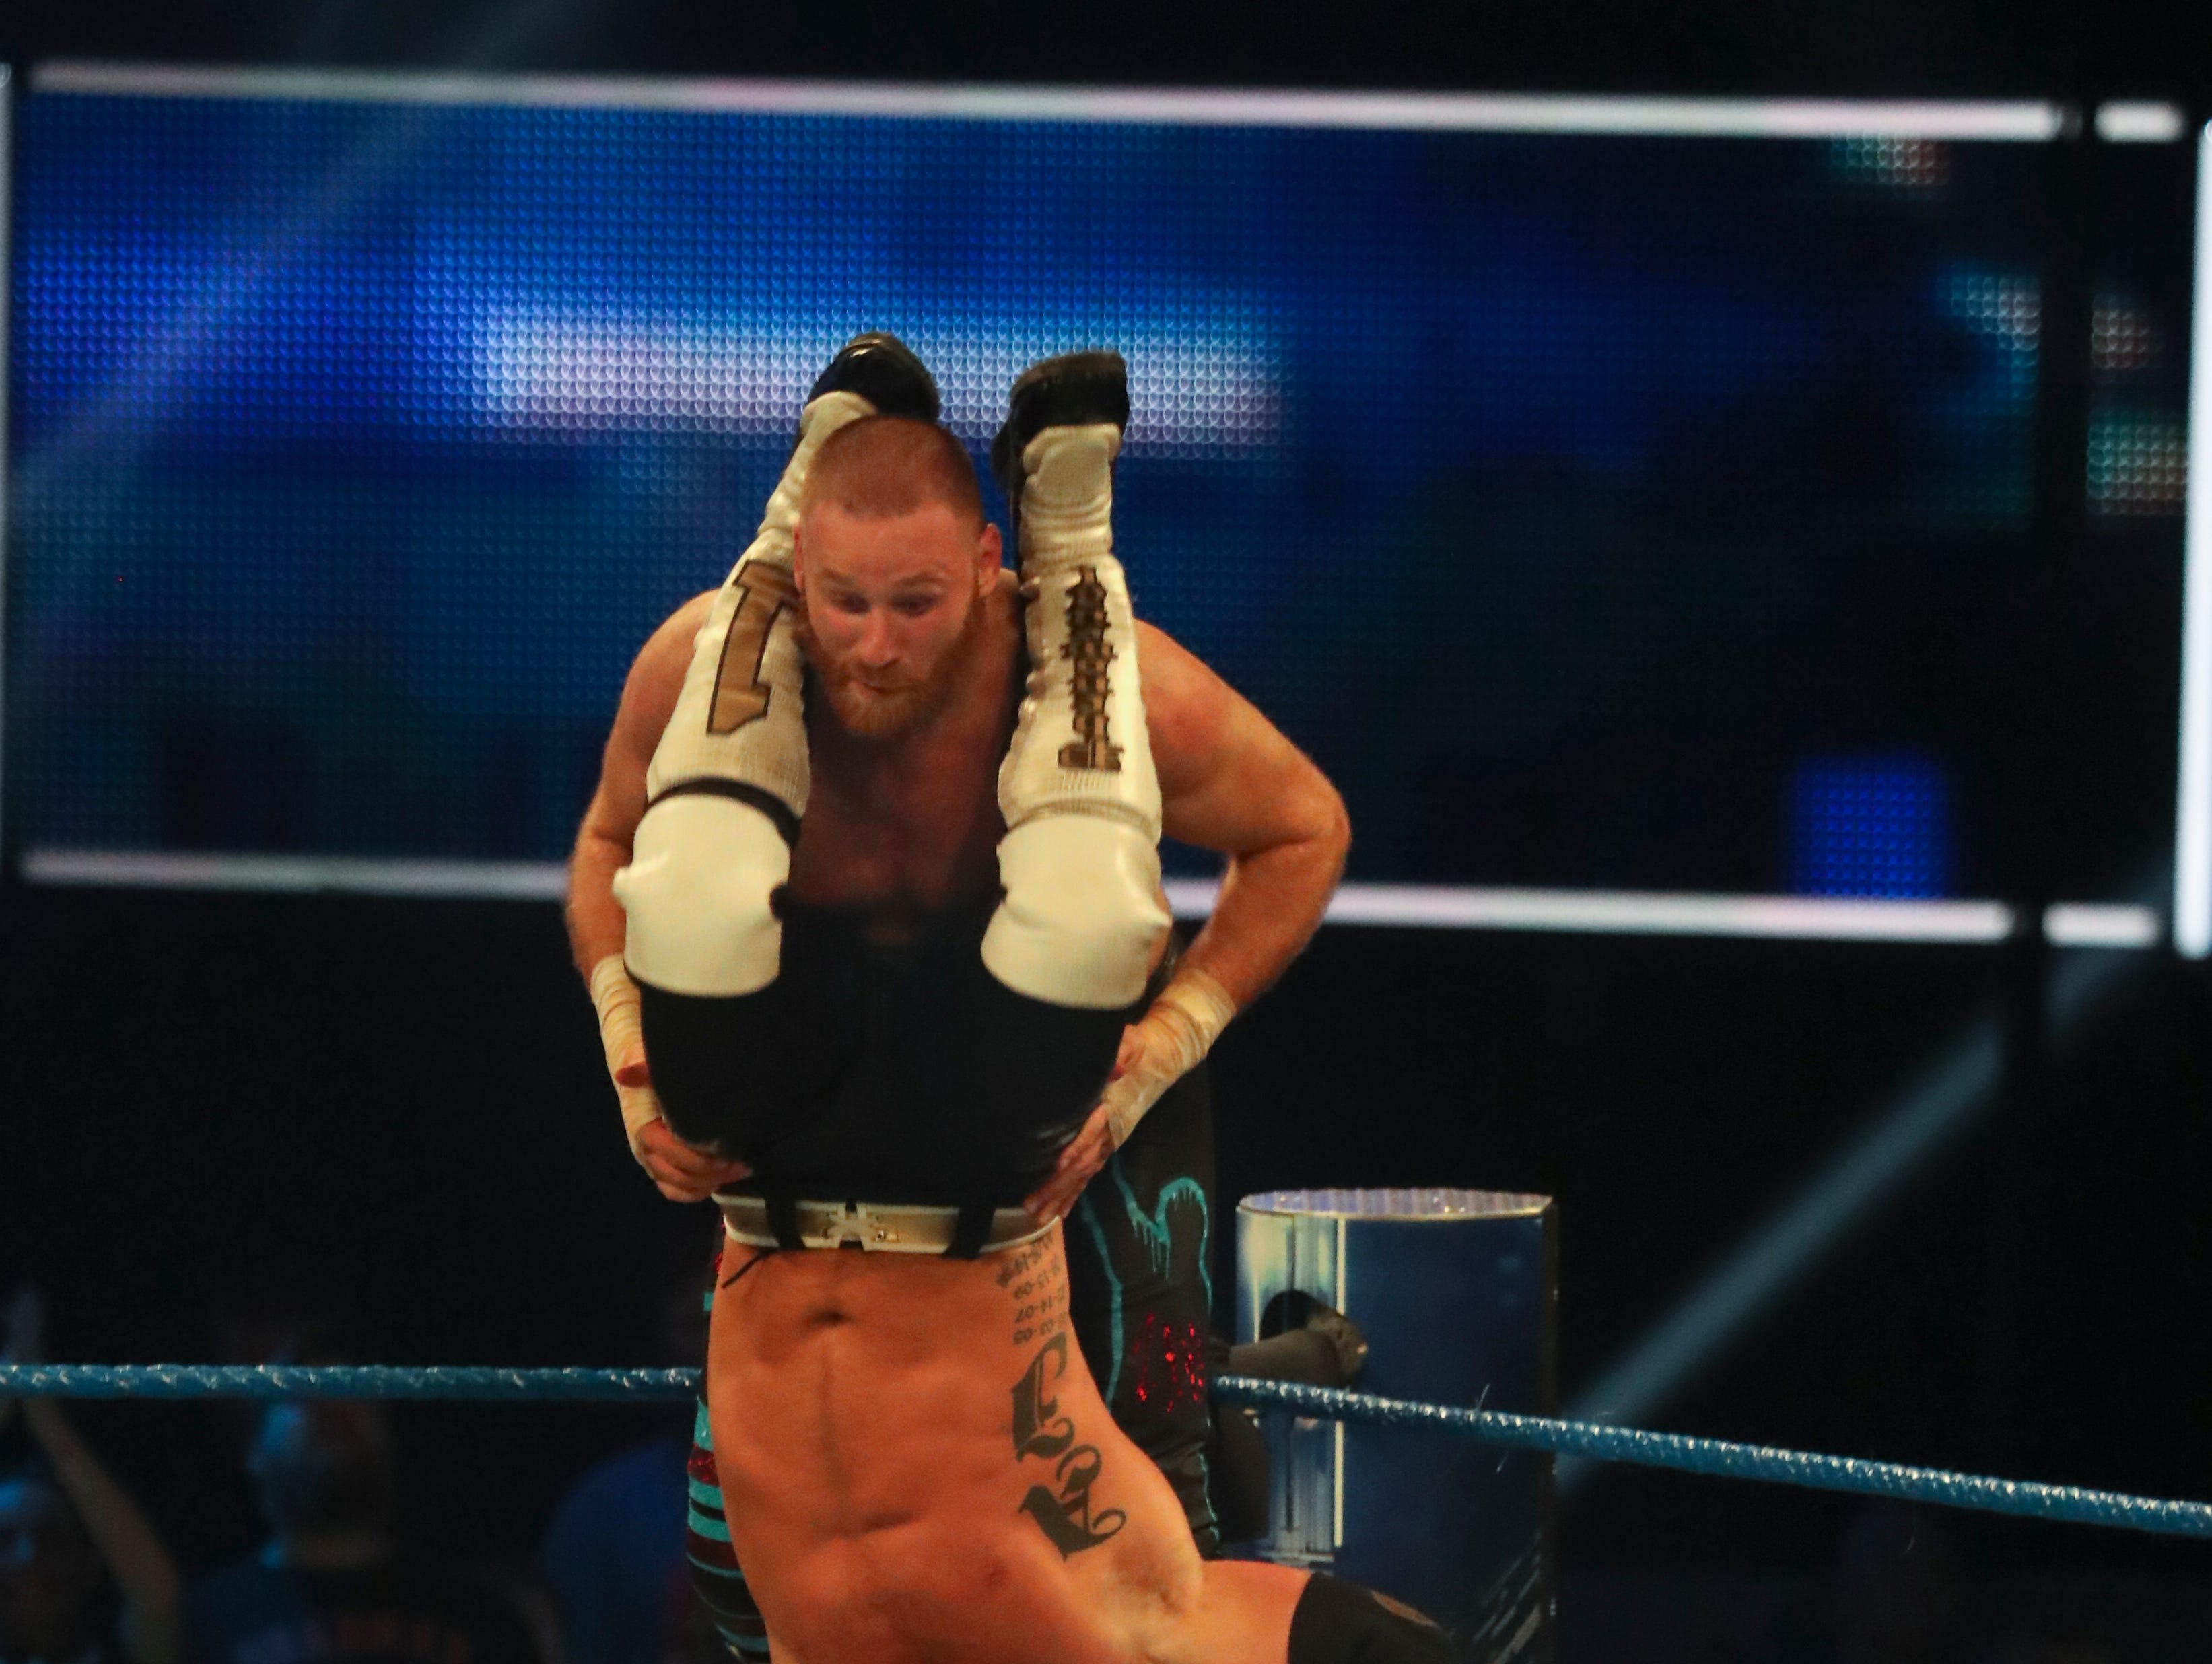 A.J. Styles puts a move on Sami Zayn during WWE Smackdown on May 7.